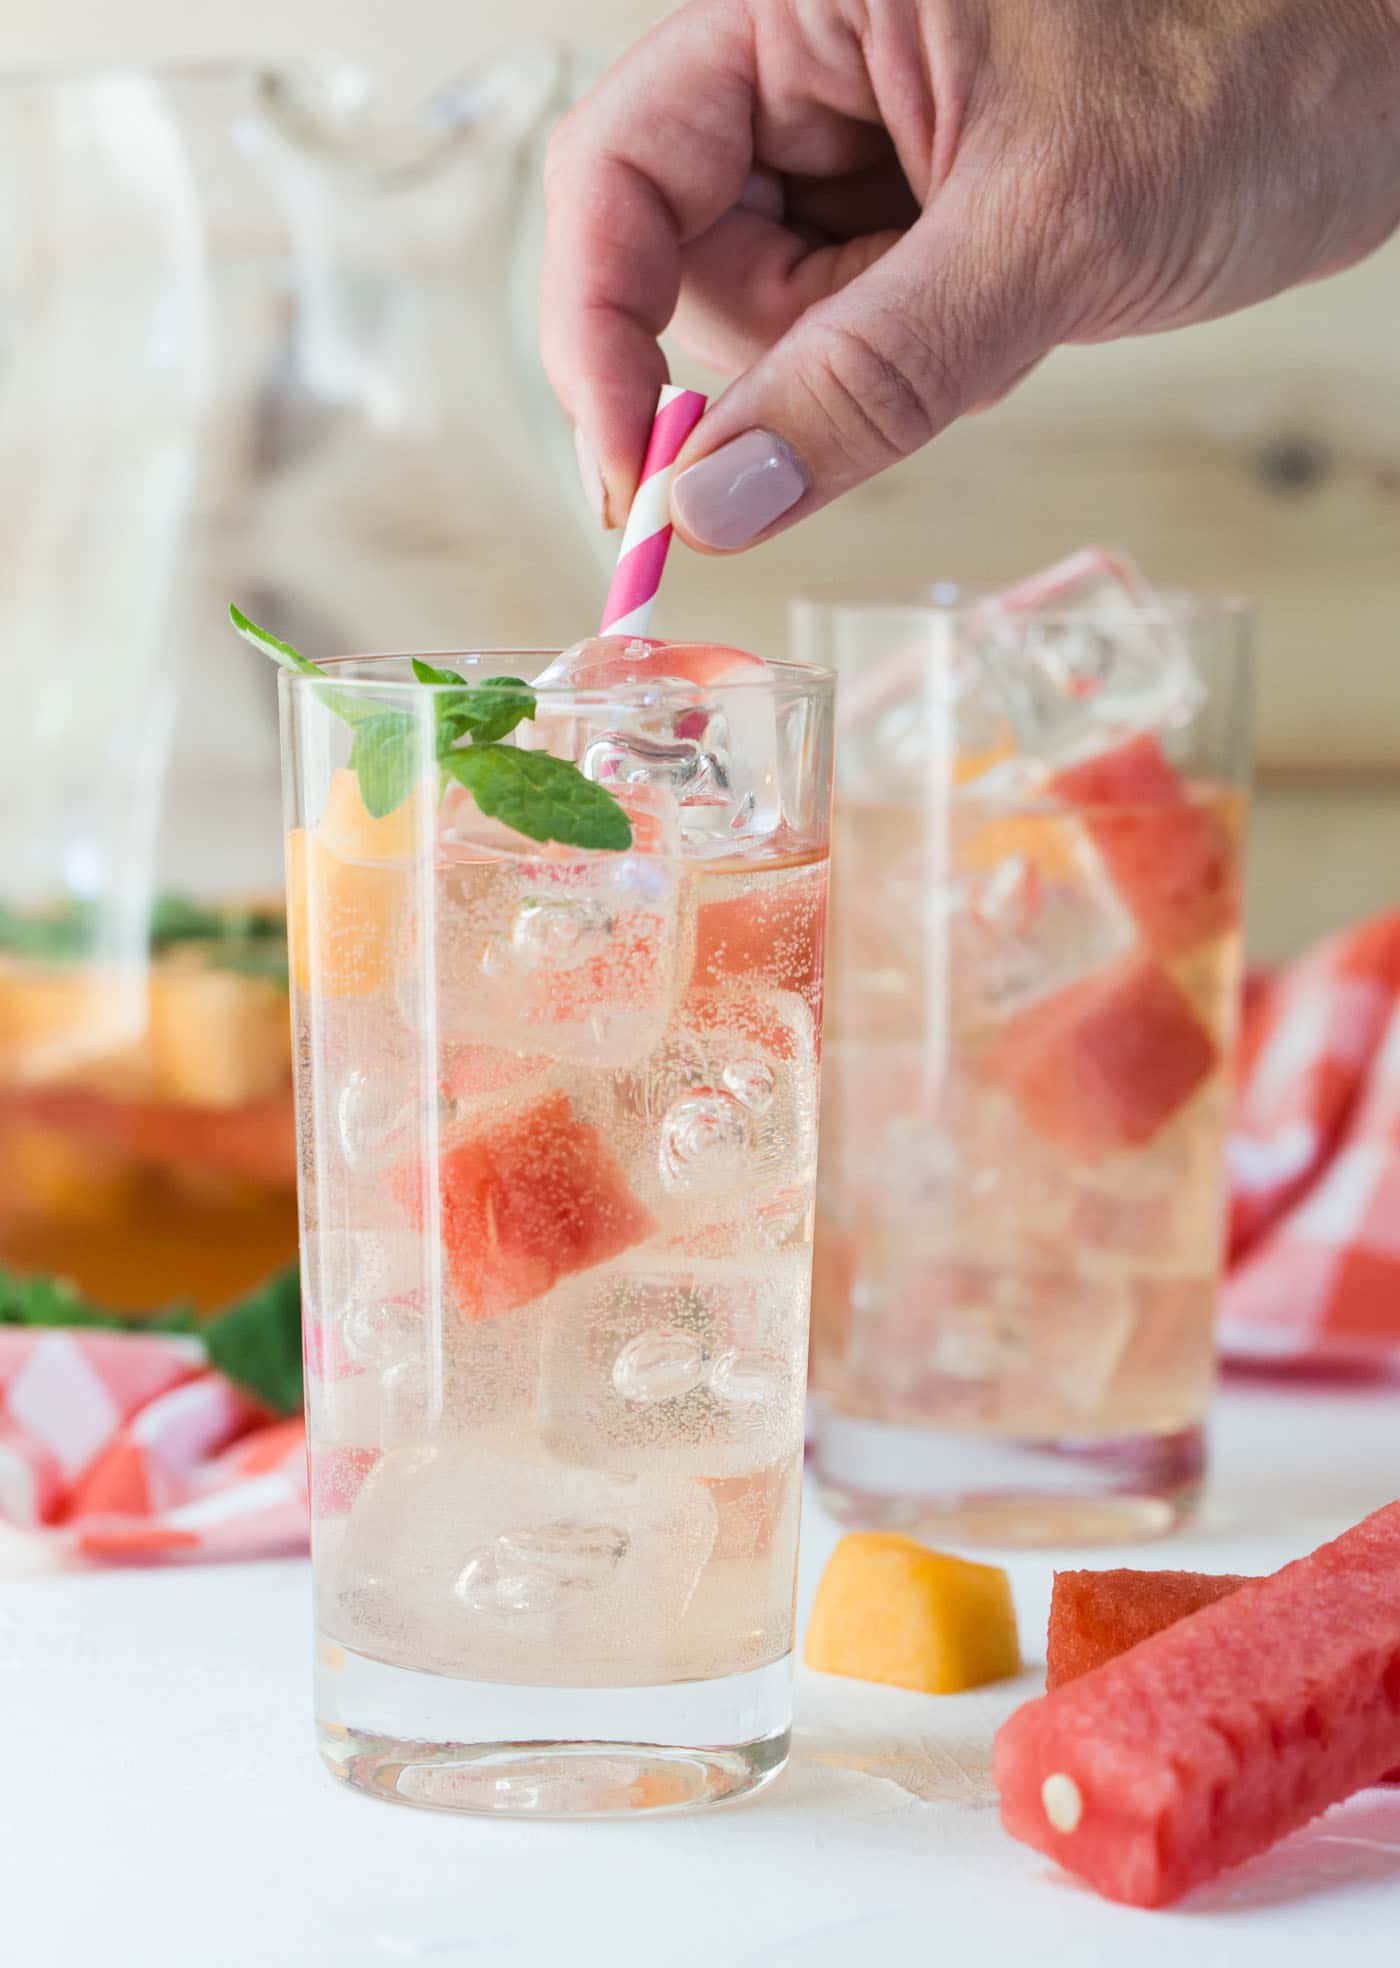 Rosé Elderflower Sangria over ice in a high ball glass served with melon balls and mint leaves! Perfect batch cocktail!